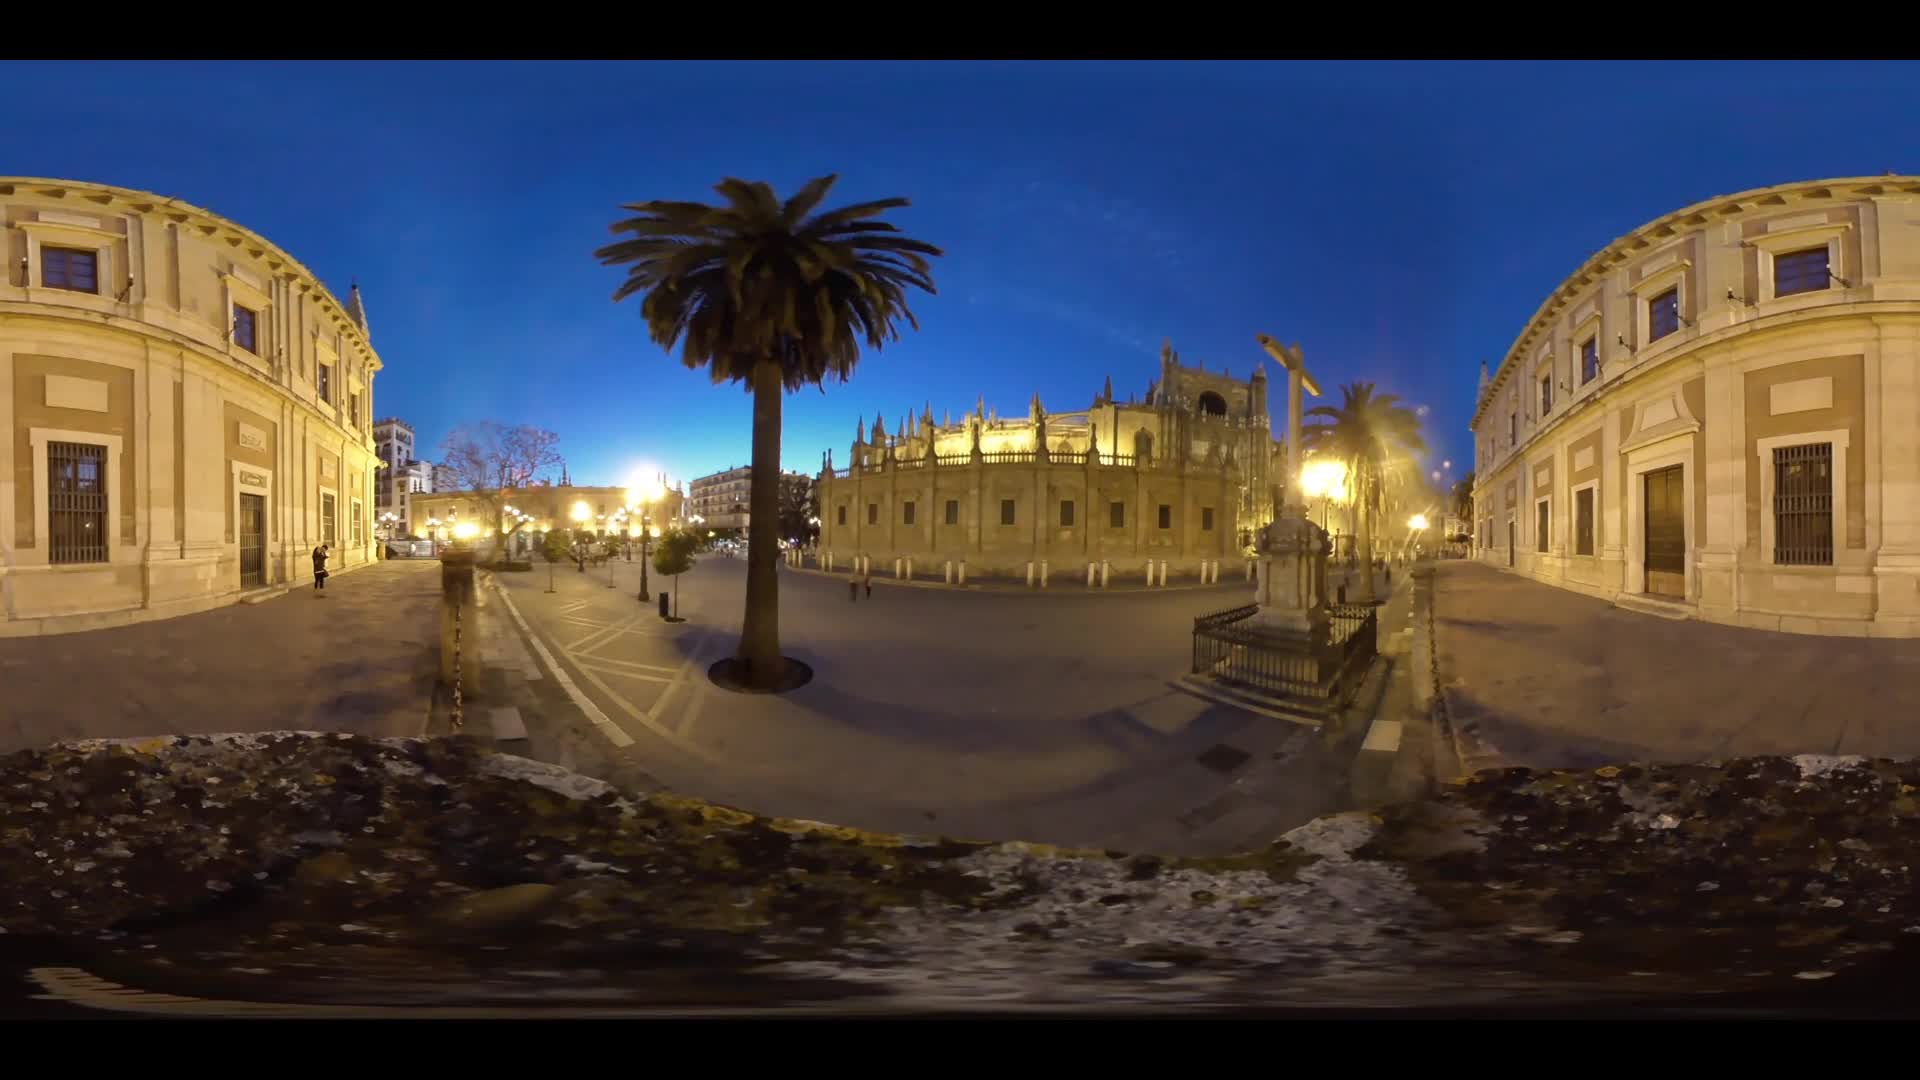 Virtual Reality 360 view from the Cathedral of Saint Mary of the See (Seville Cathedral) at night in Seville Spain